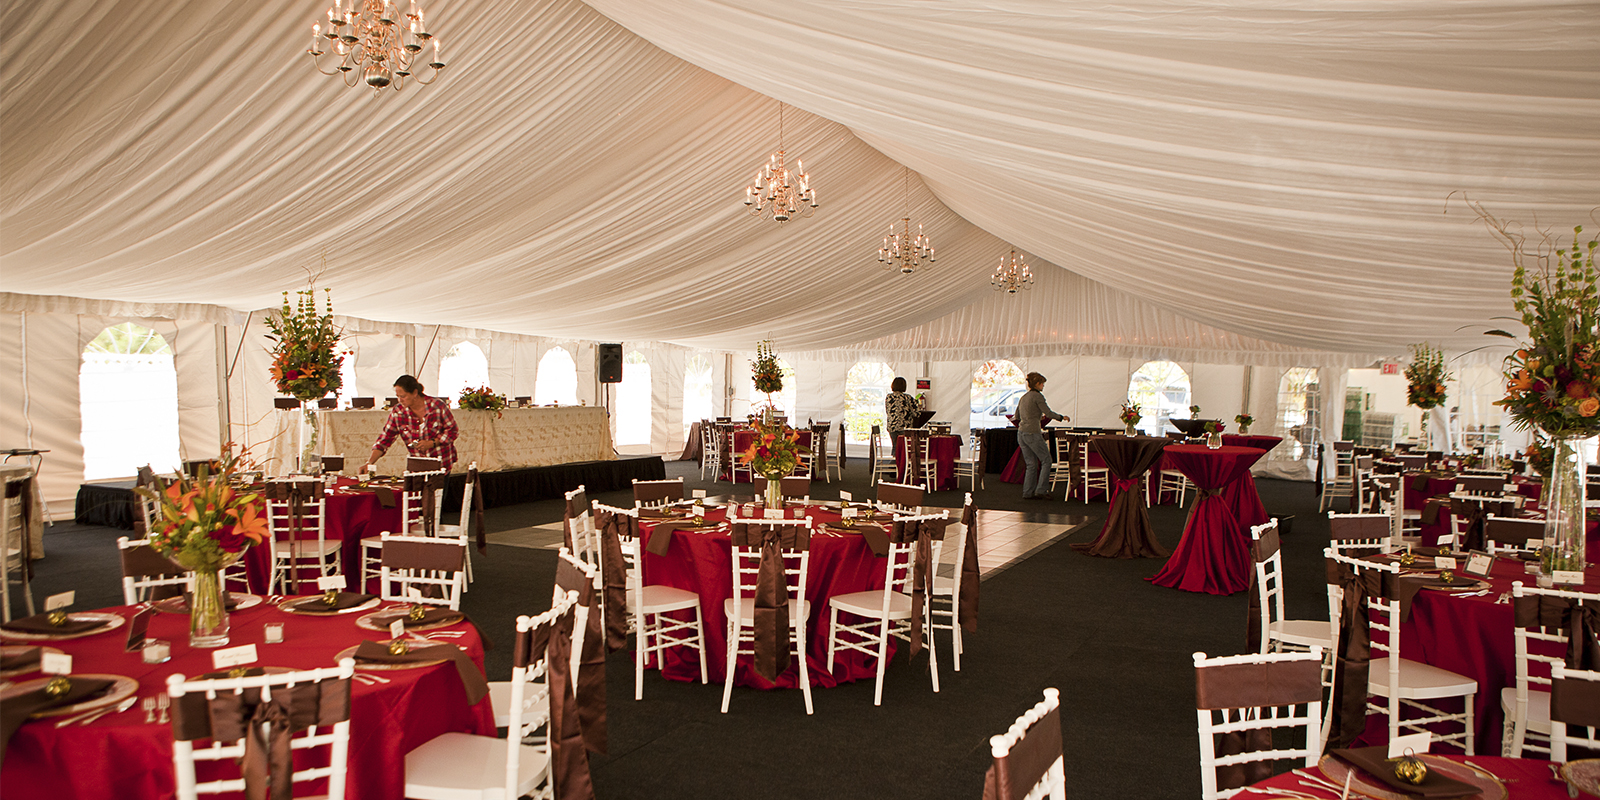 Wedding Event Rentals | Party Rentals In Cary Nc Equipment Rentals In Raleigh Nc